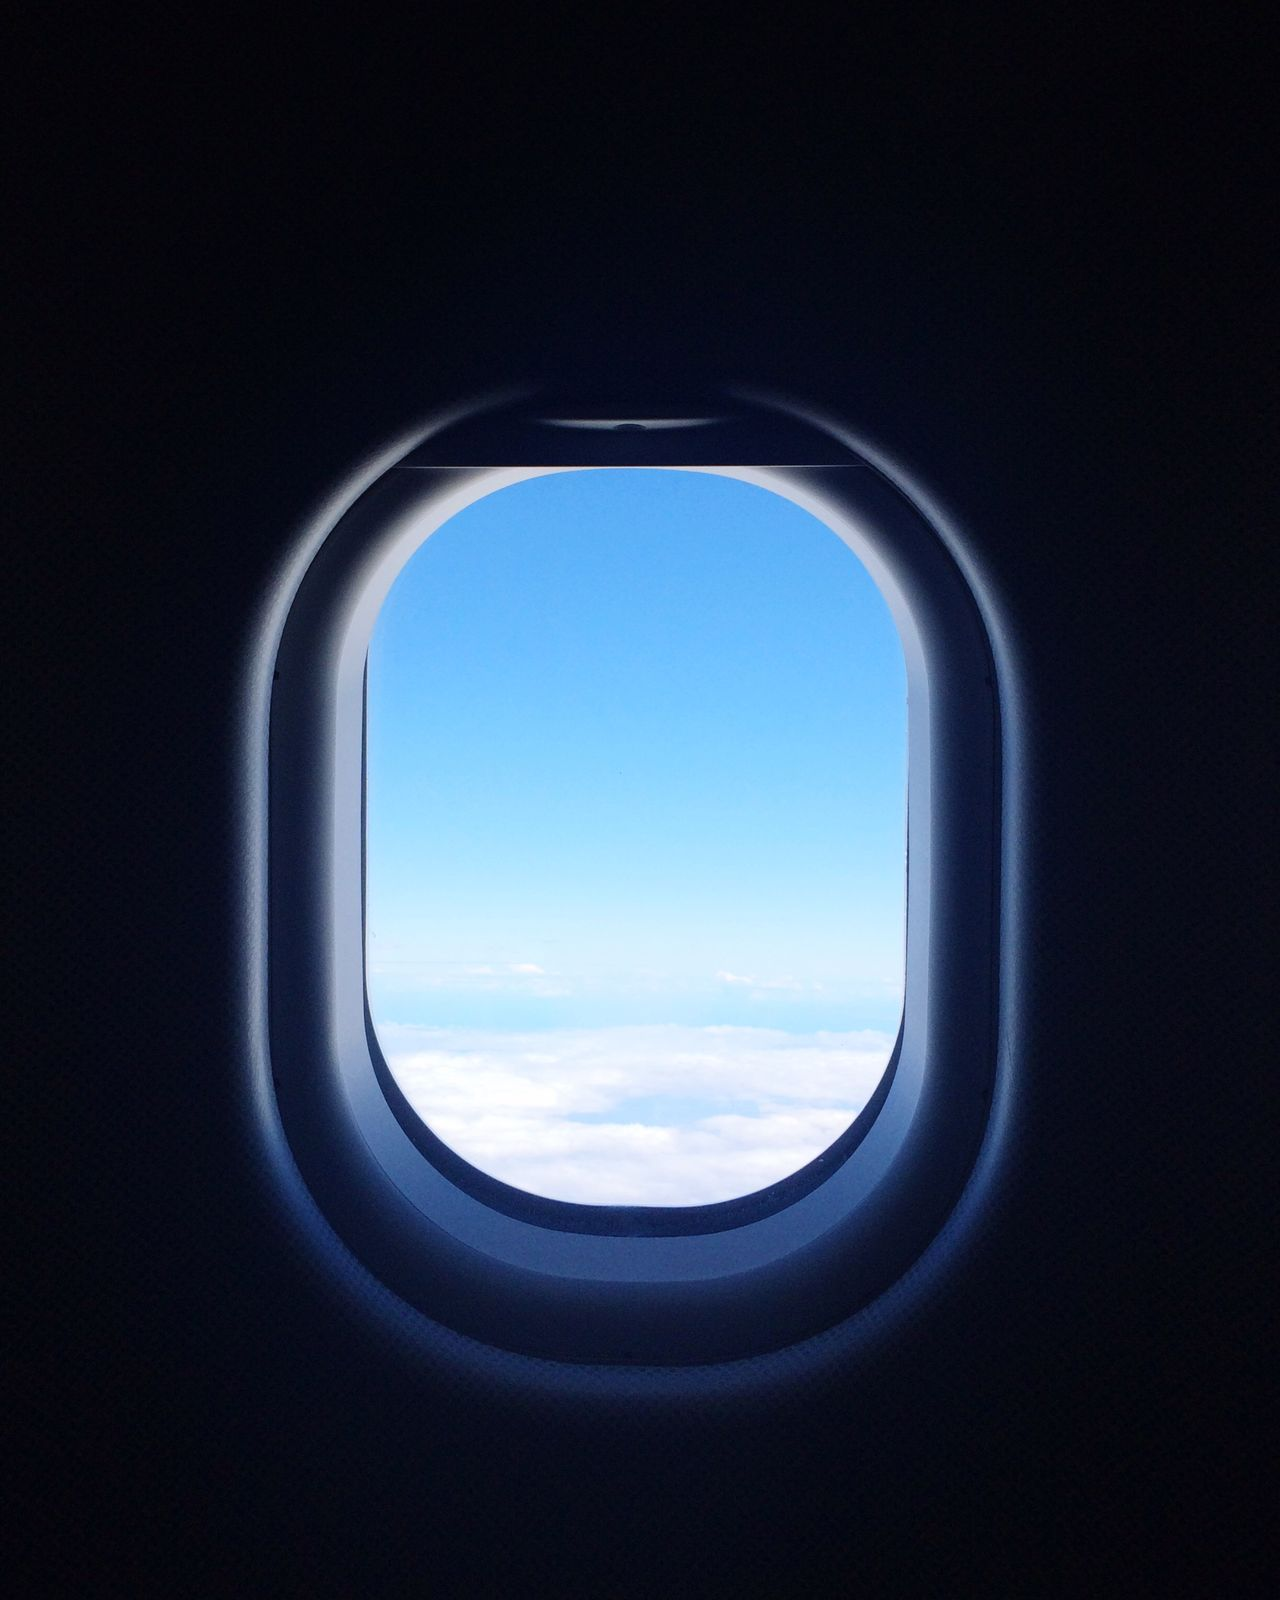 Beautiful stock photos of plane, window, transportation, sky, airplane